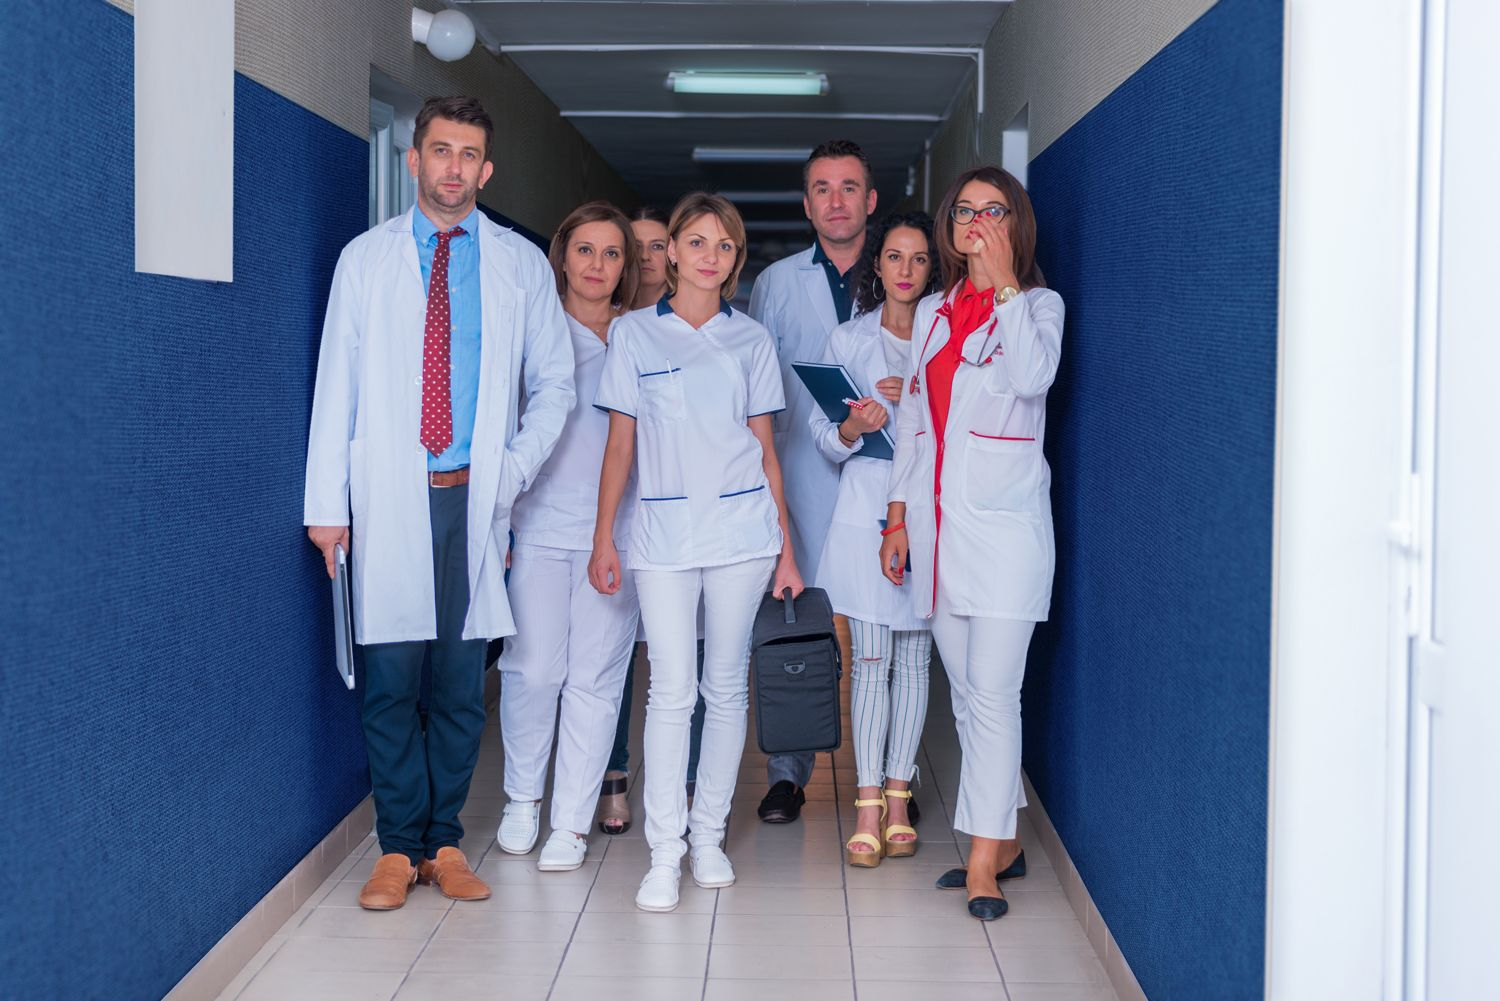 hospital hallway with parallel fabric panel with doctors and nurses posing